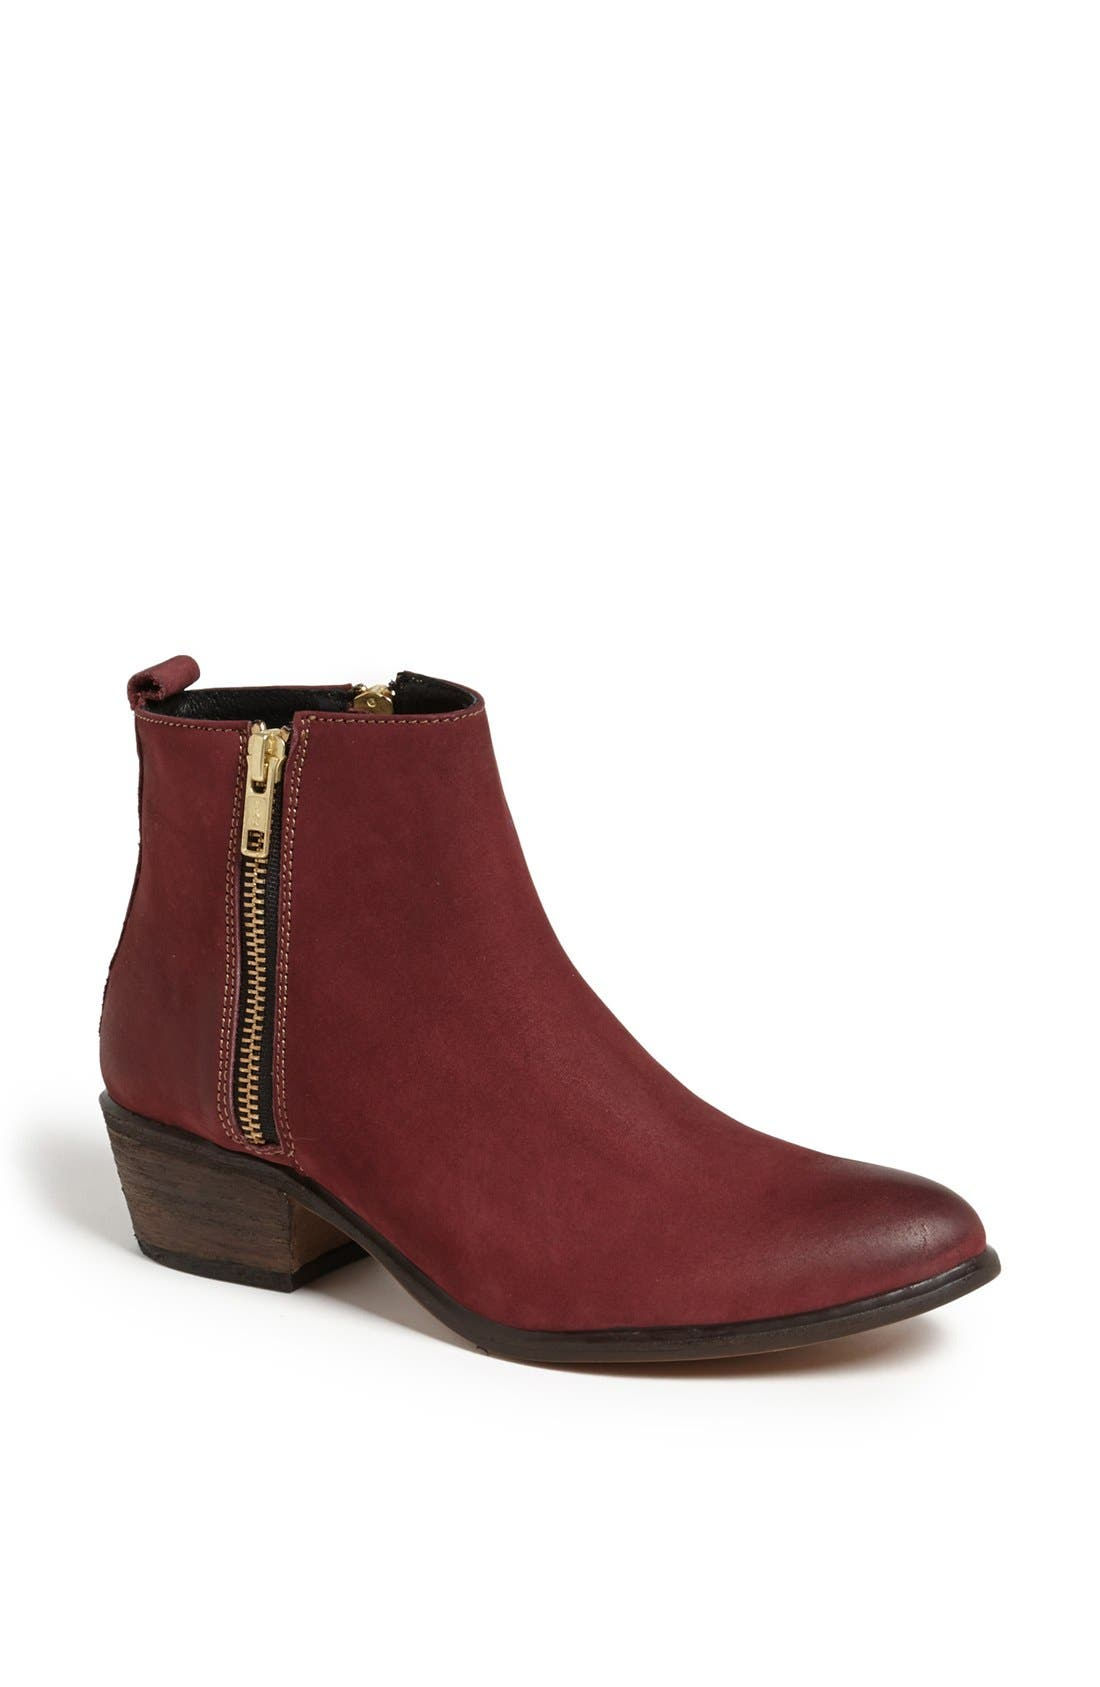 Alternate Image 1 Selected - Steve Madden 'Neovista' Boot